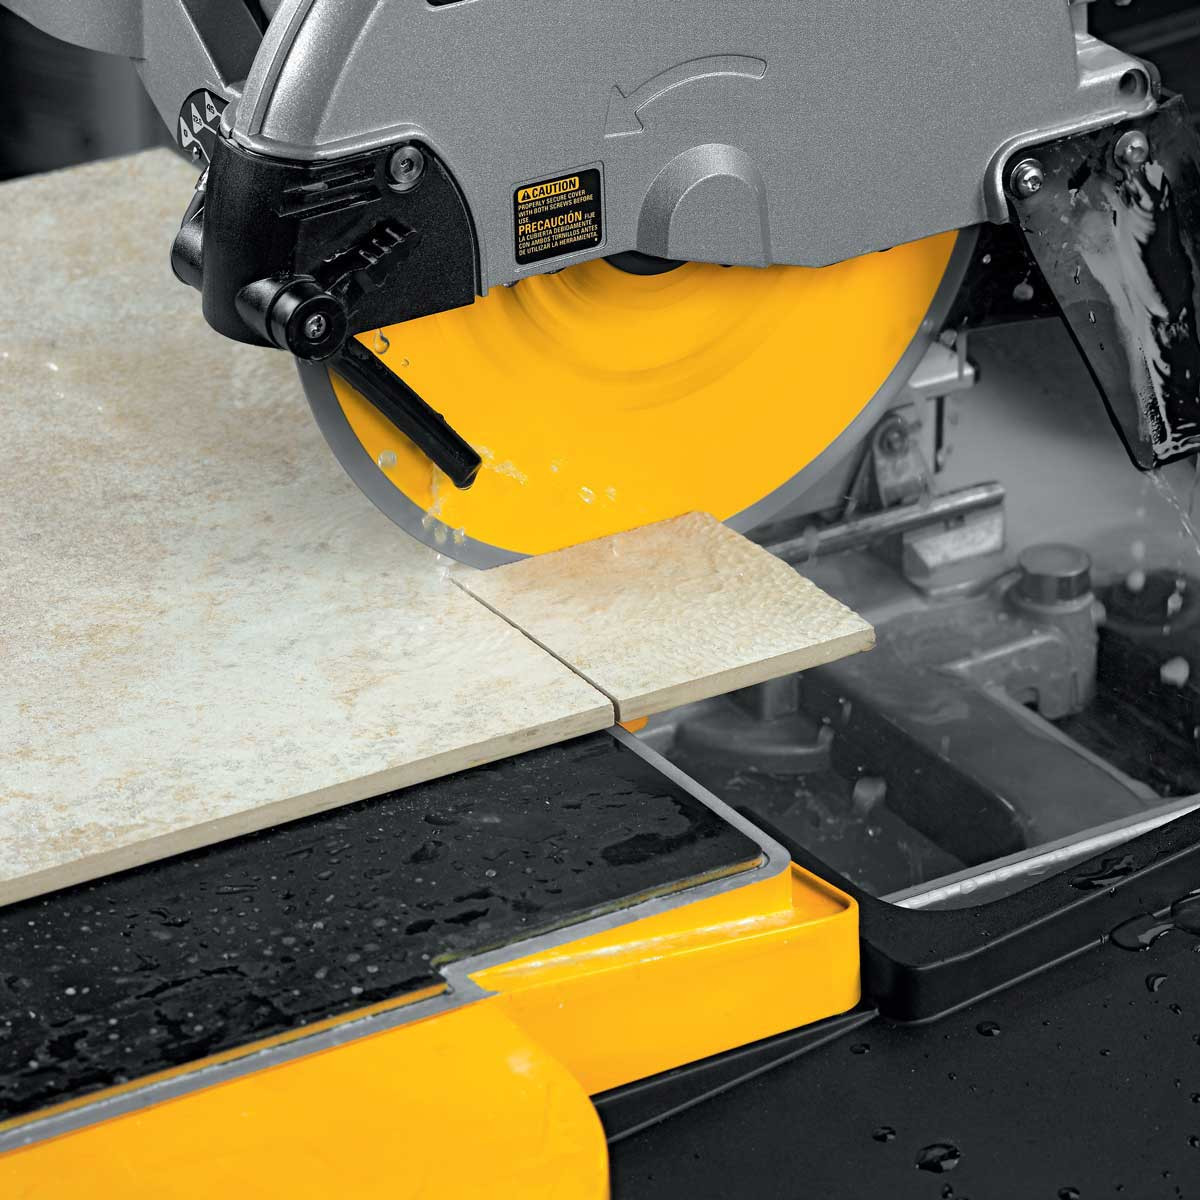 dewalt d24000 tile saw L cut